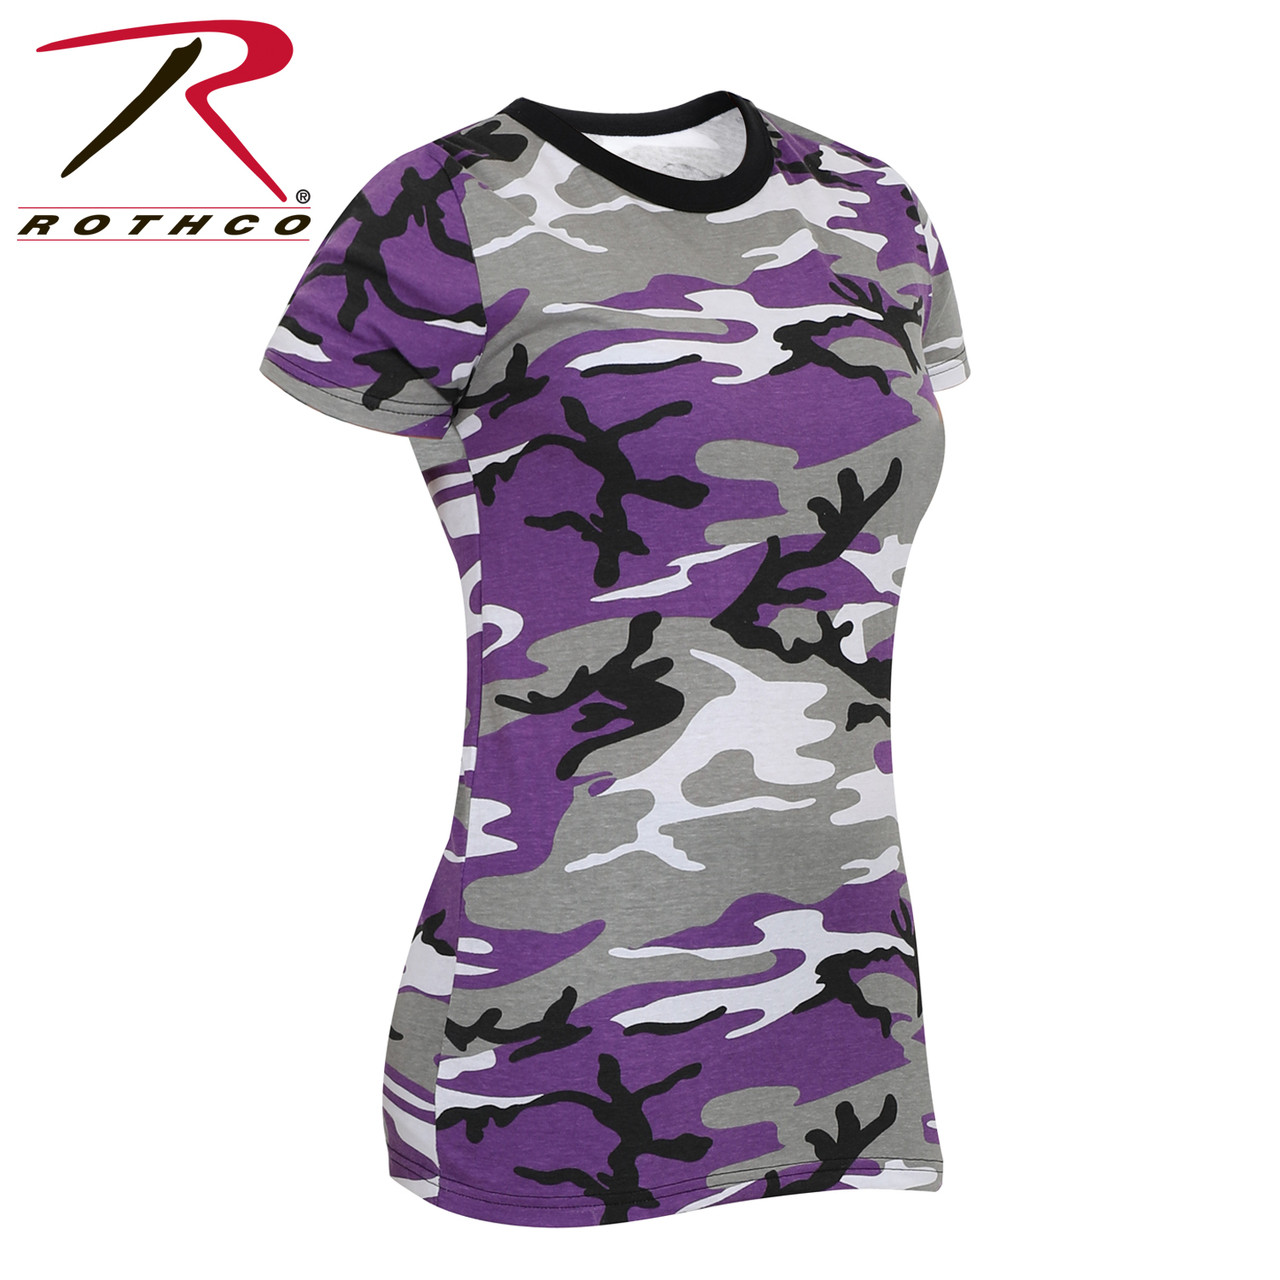 9183dfd2b4e1b Rothco Women's Long Length Camo T-Shirt - Ultra Violet Purple - Hero ...